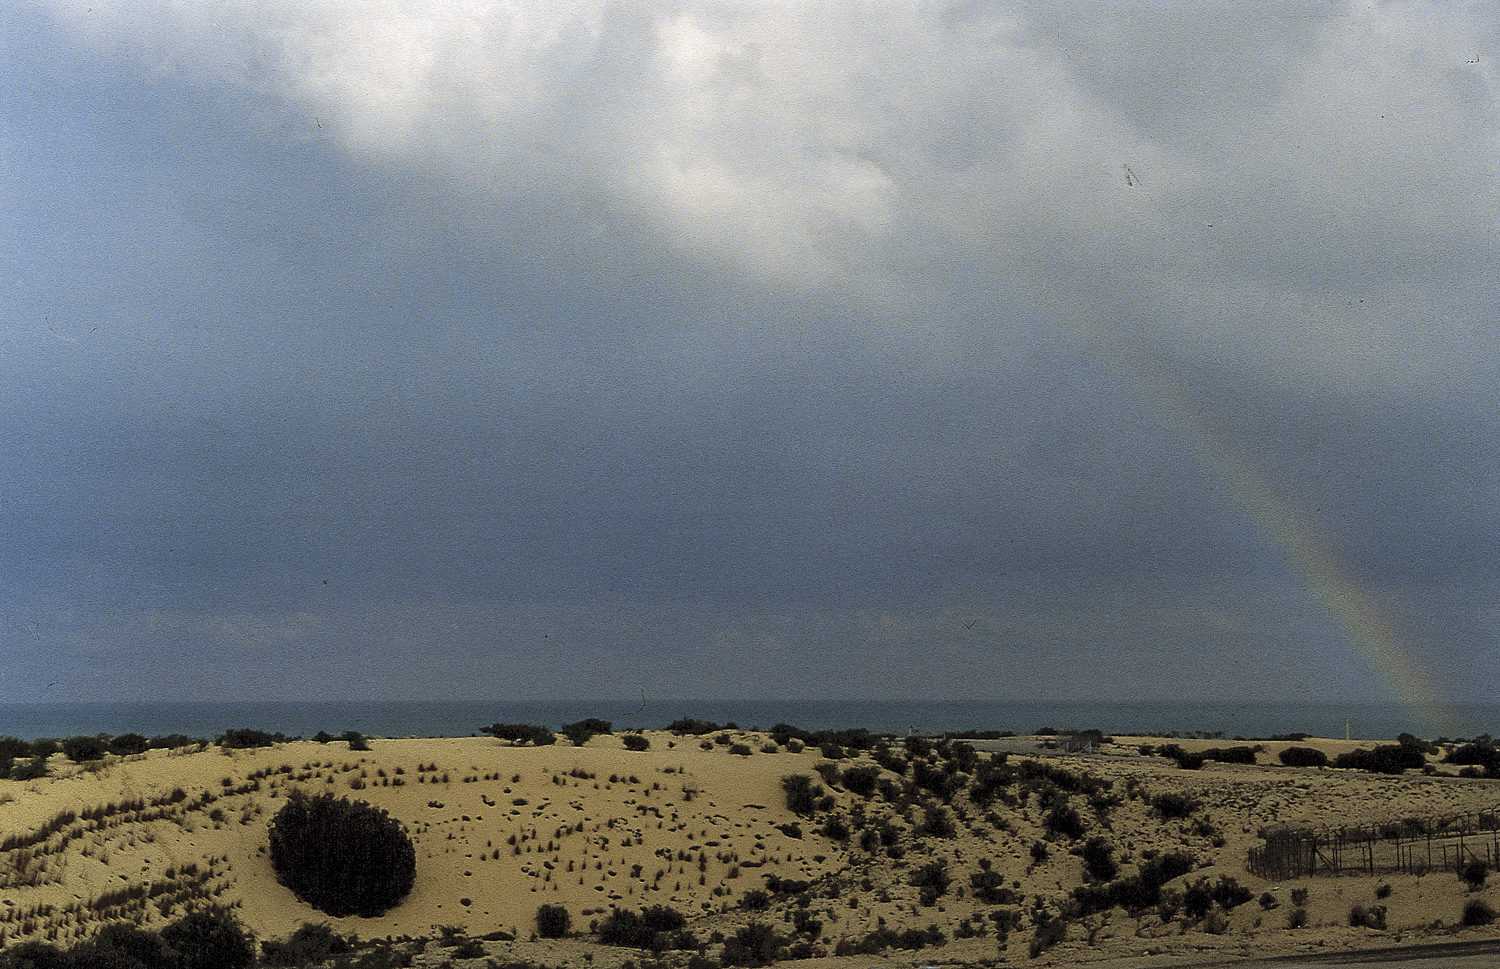 Rainbow - Camp Nuria, Gaza Strip, 1990